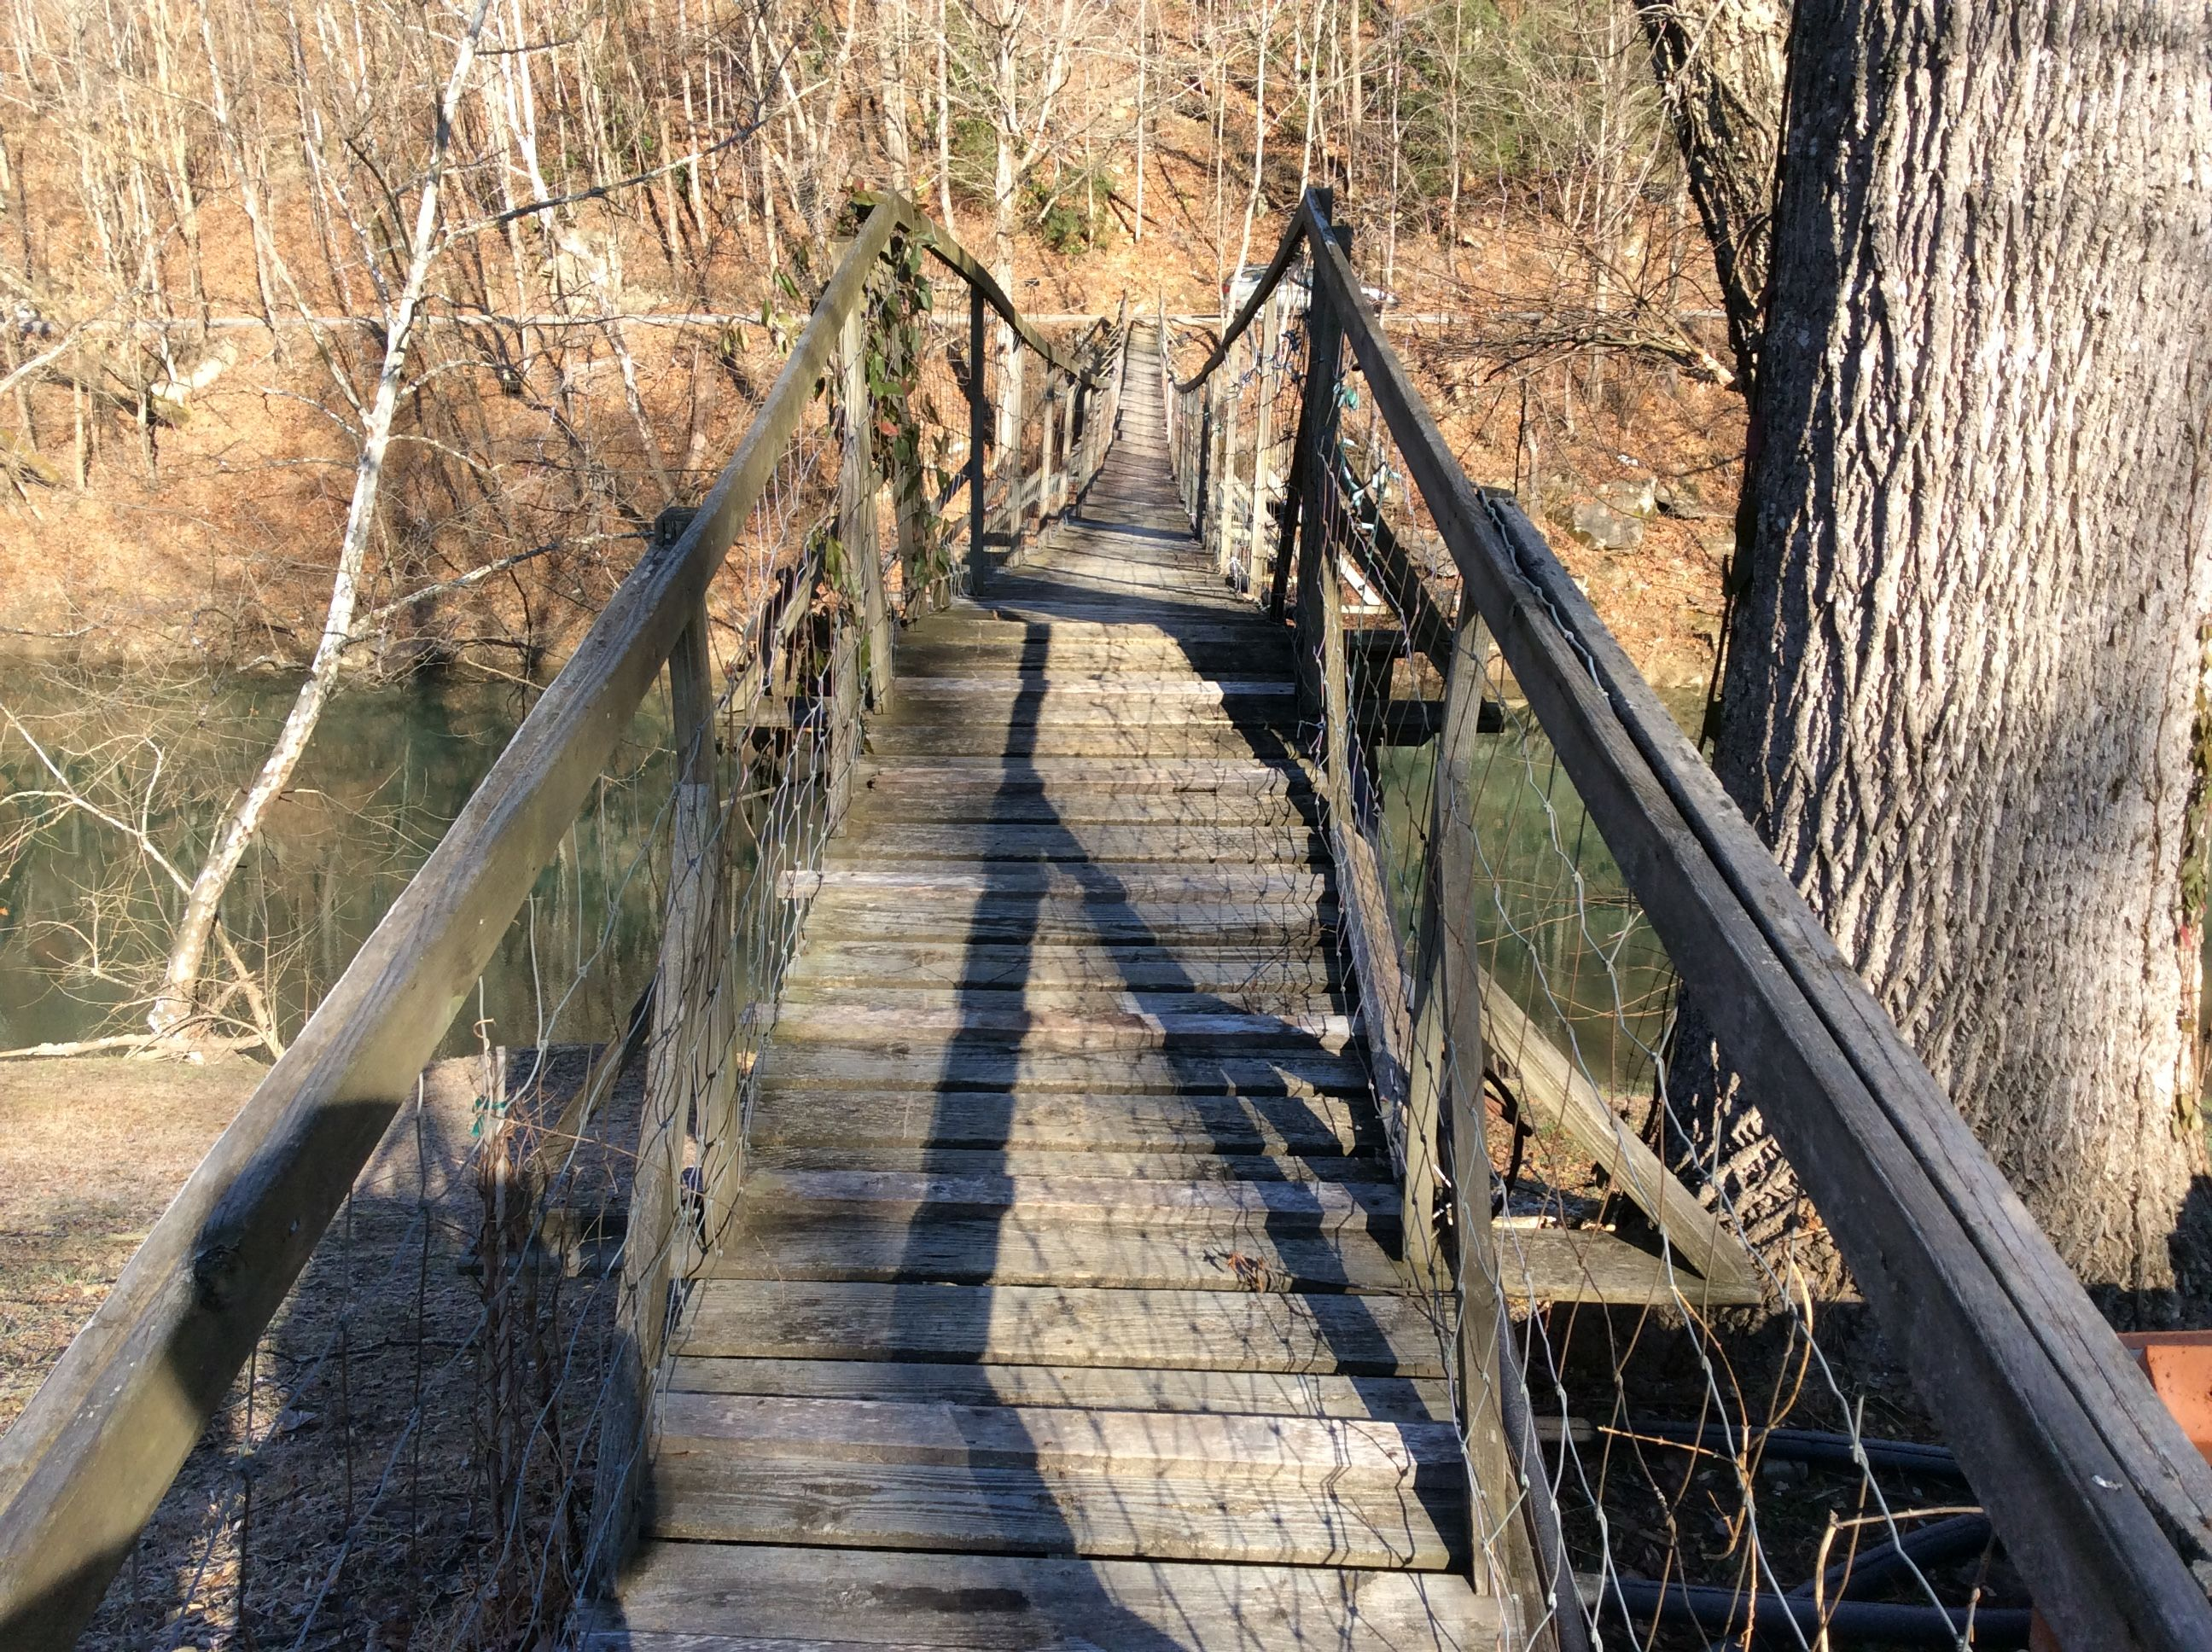 Swinging Bridge across Middle Fork of KY River, Photo